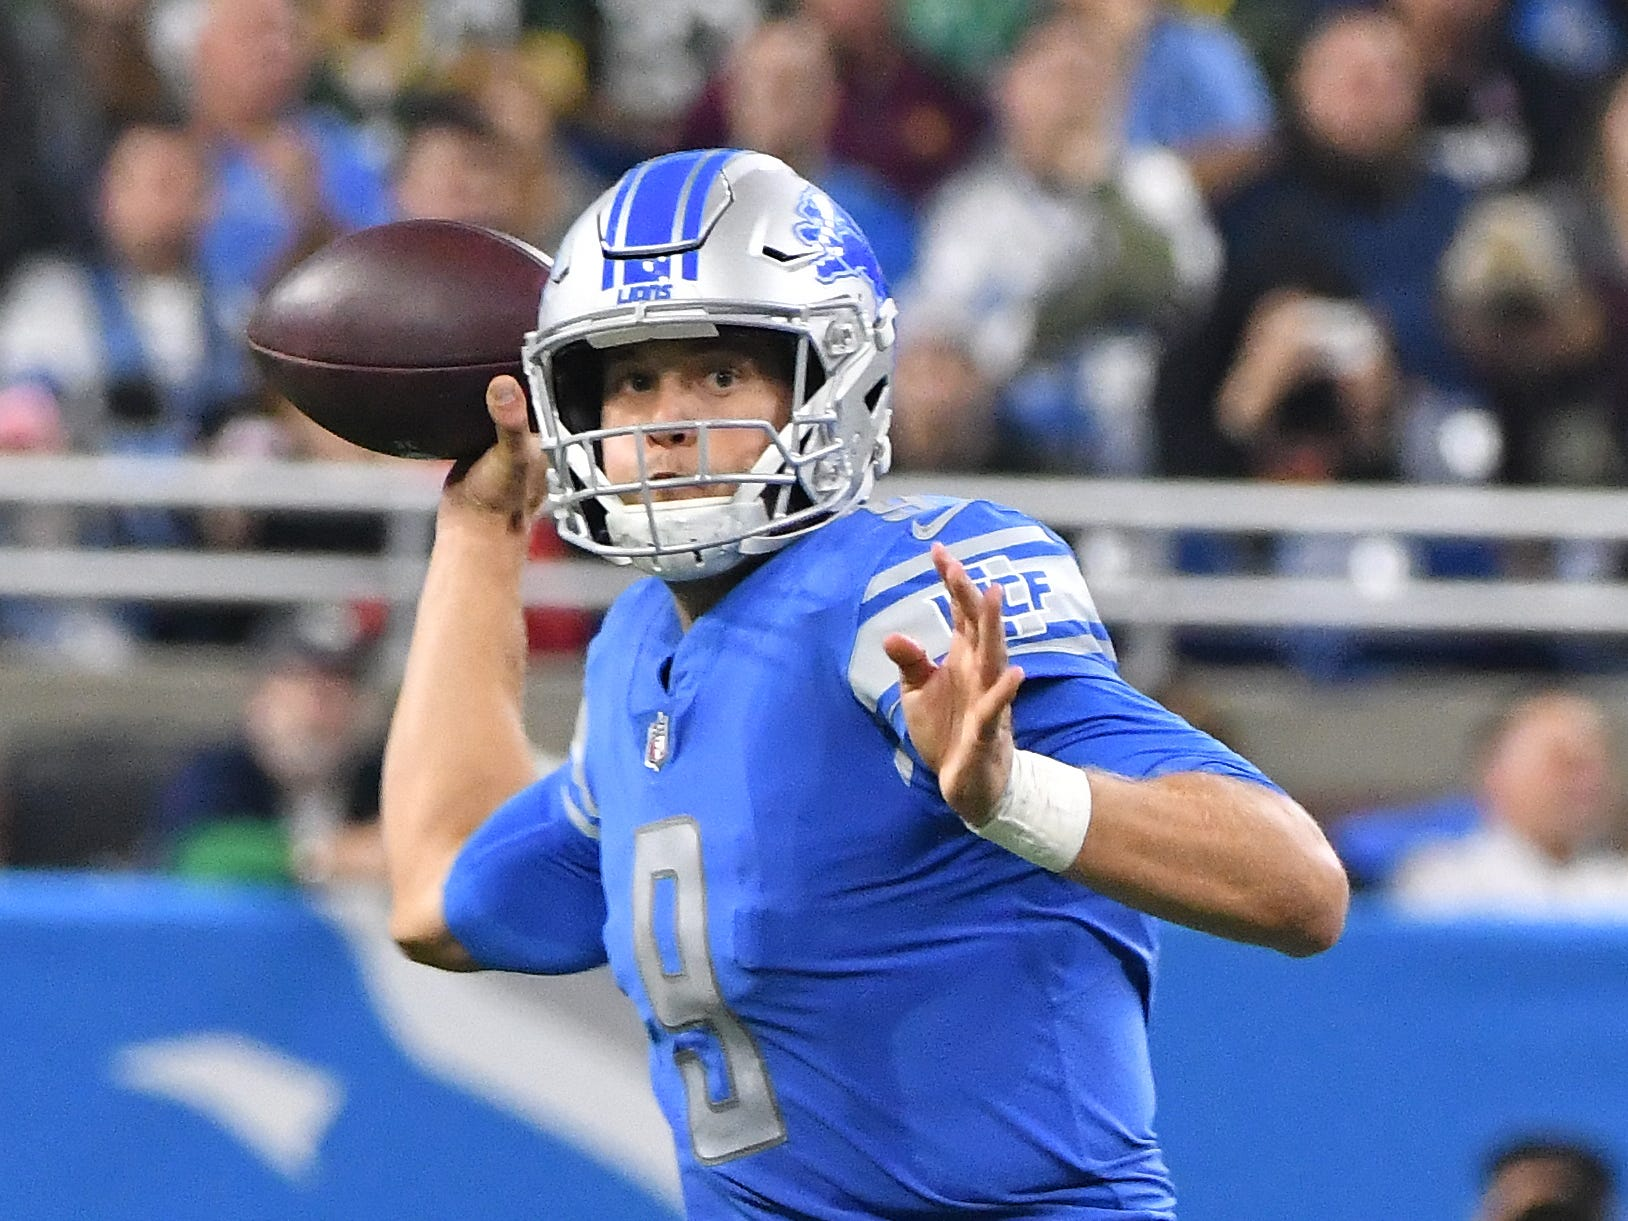 Lions quarterback Matthew Stafford looks up field for an open receiver in the third quarter.